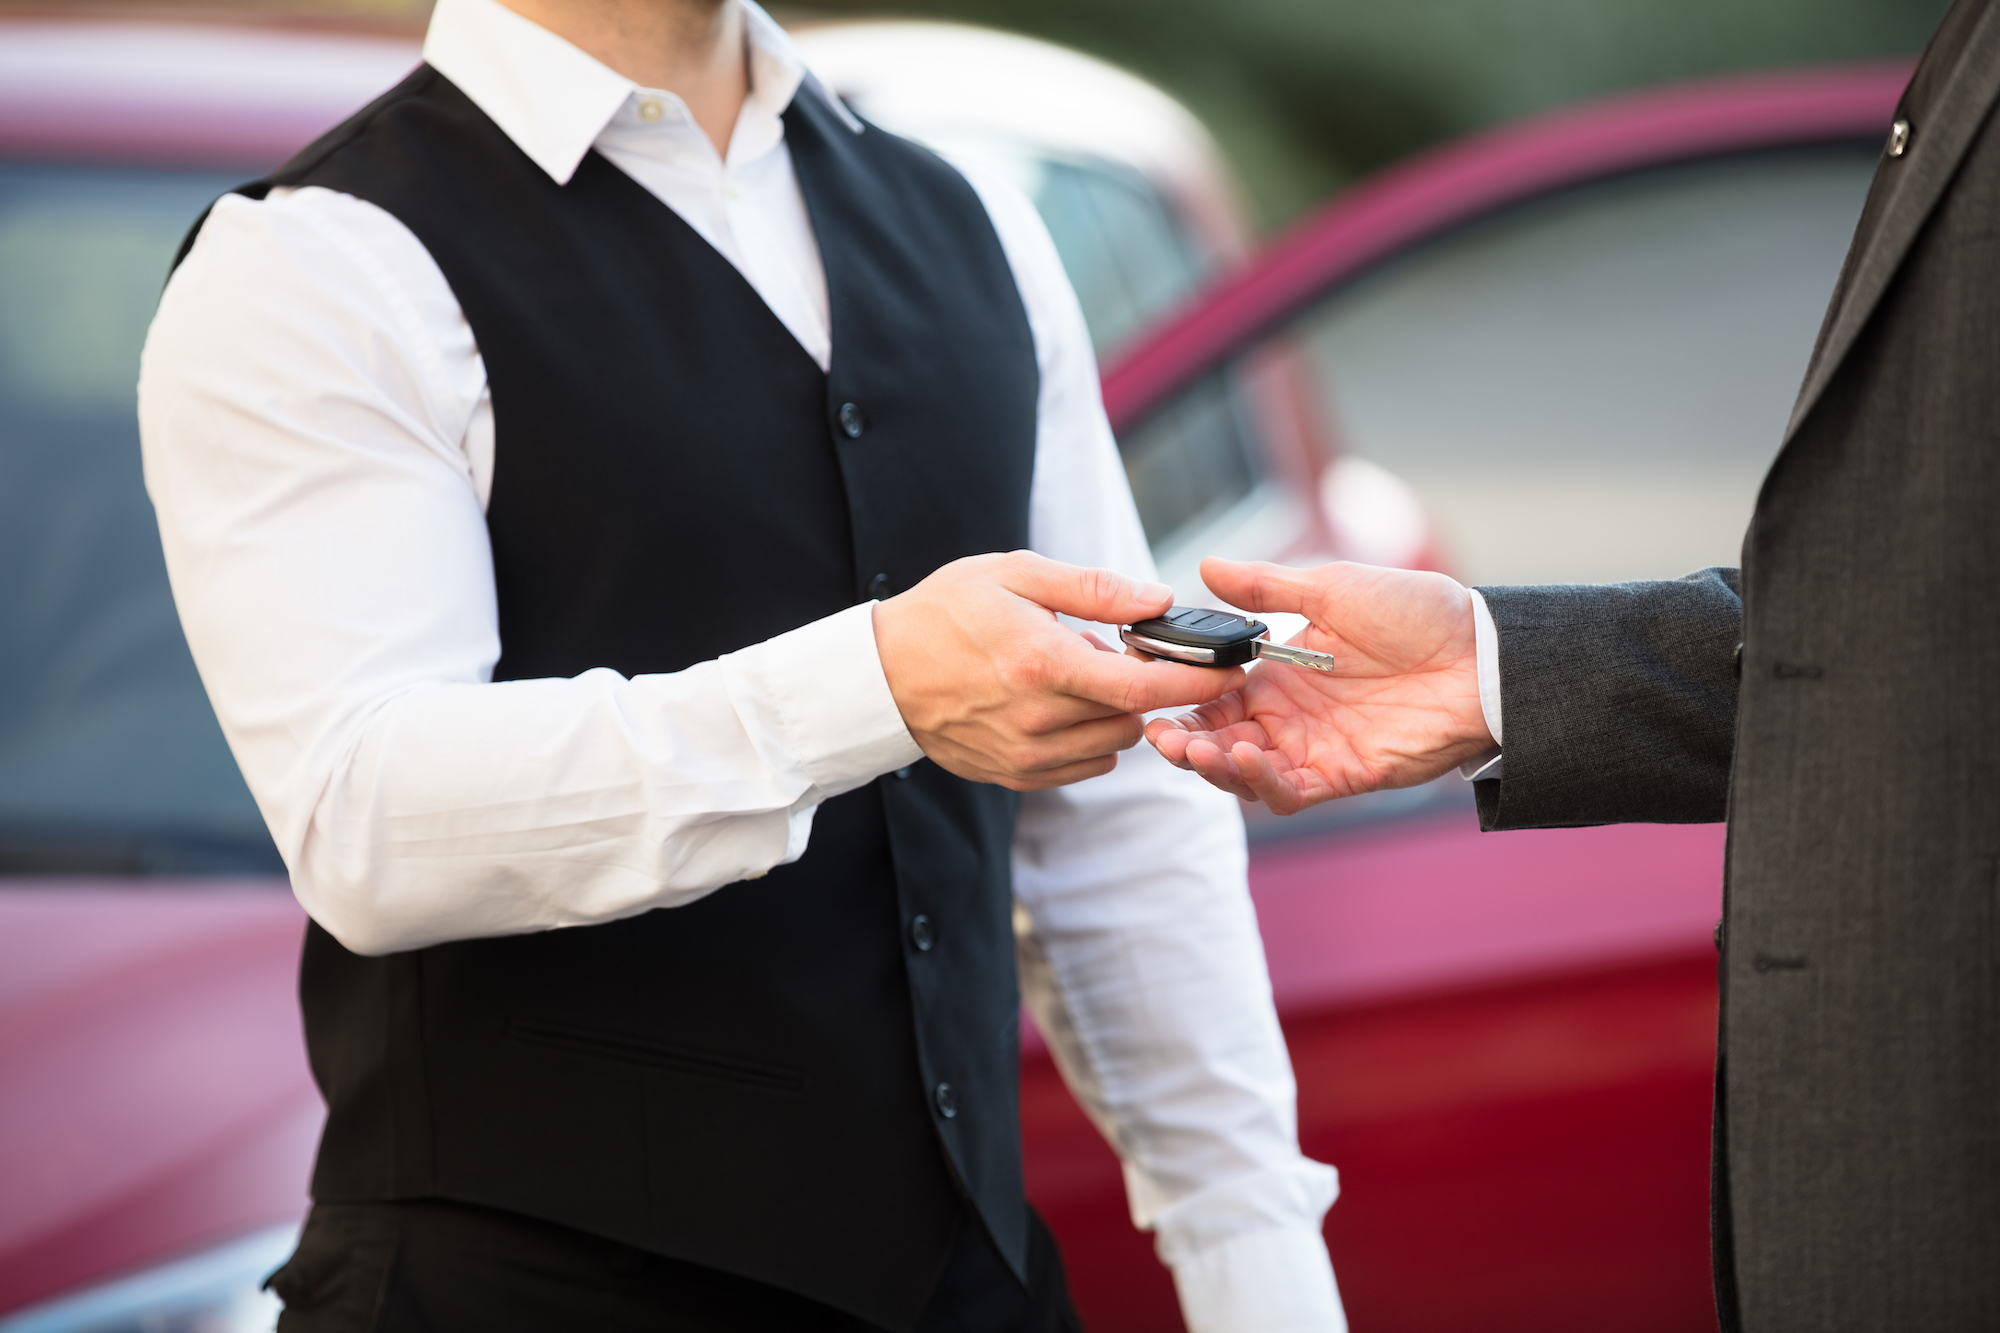 a person in a white shirt and black vest hands over a set of keys